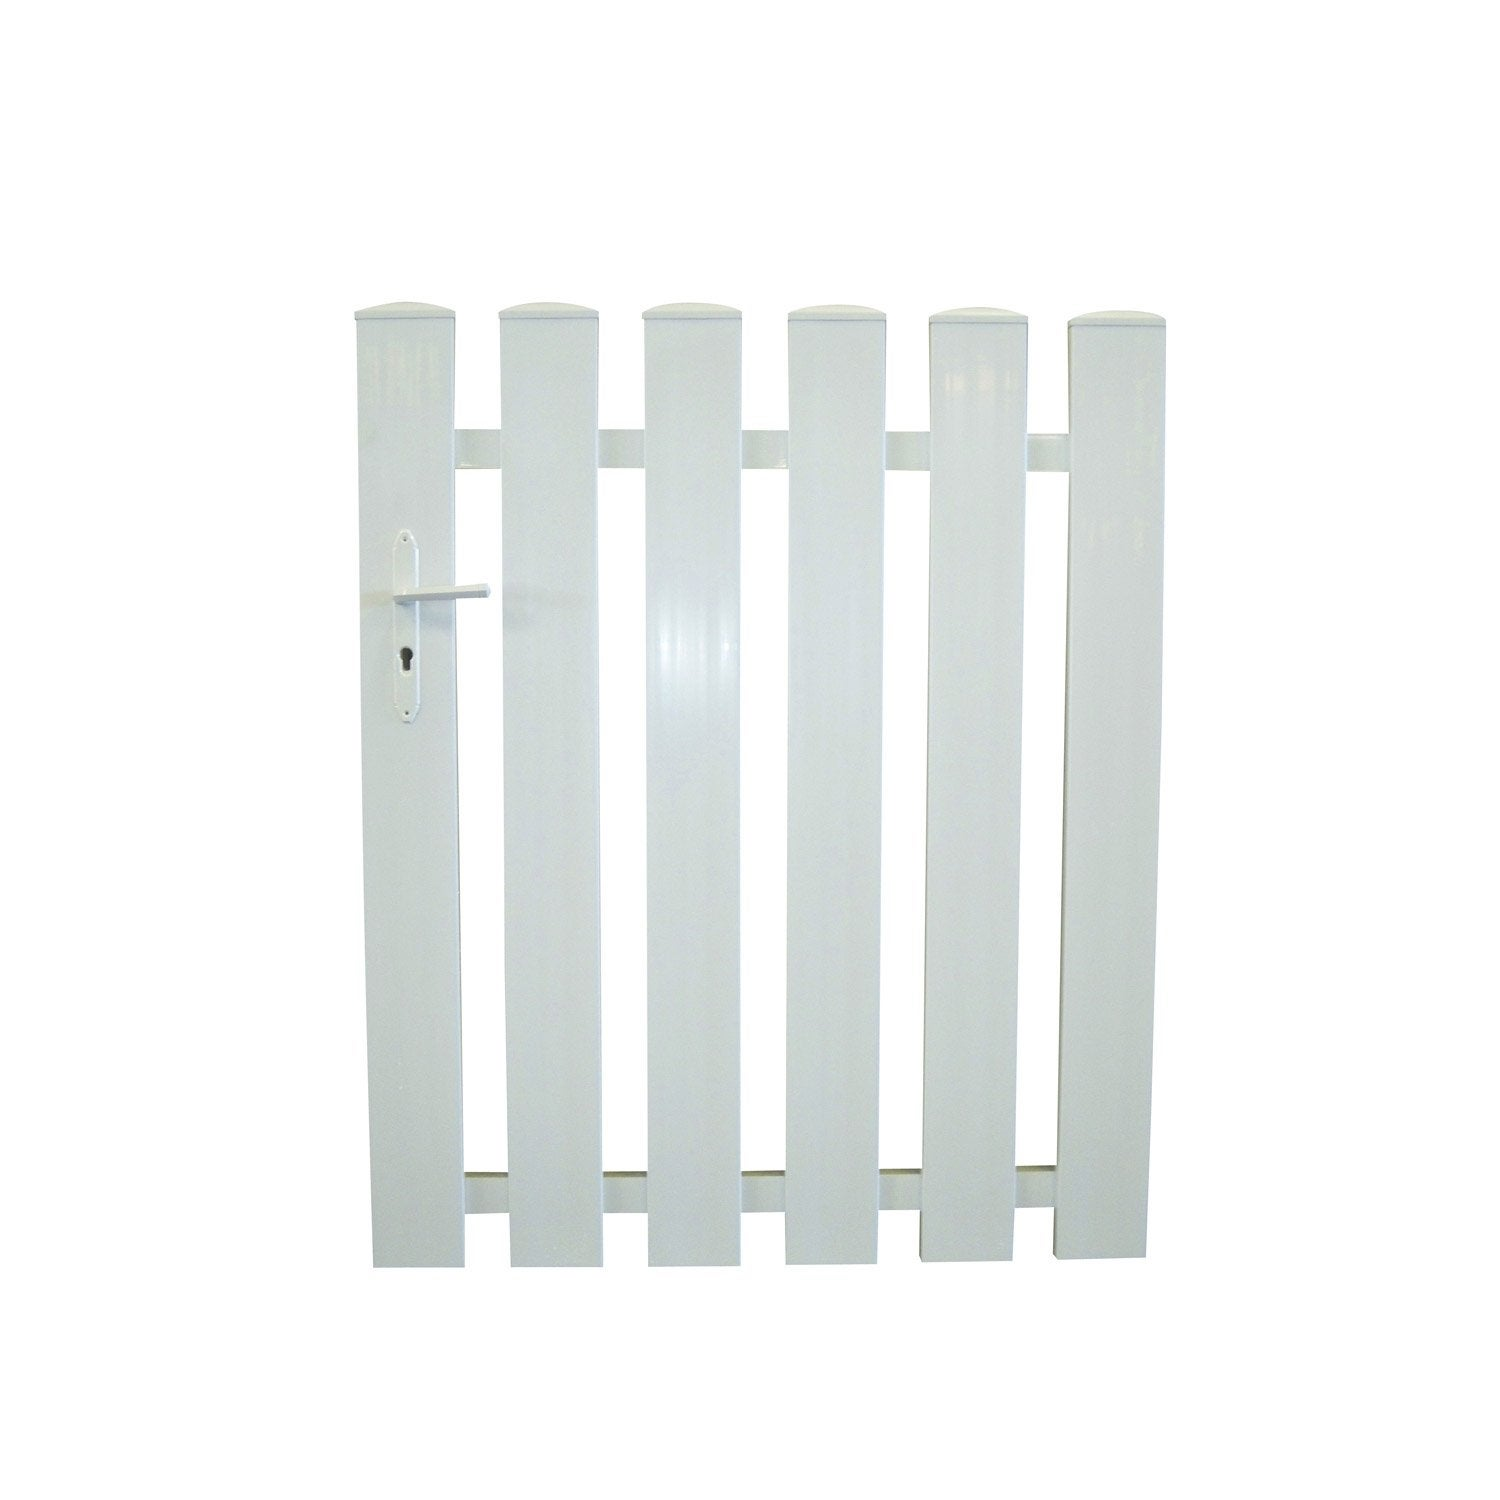 Portillon pvc blanc pas cher for Portillon en pvc pas cher